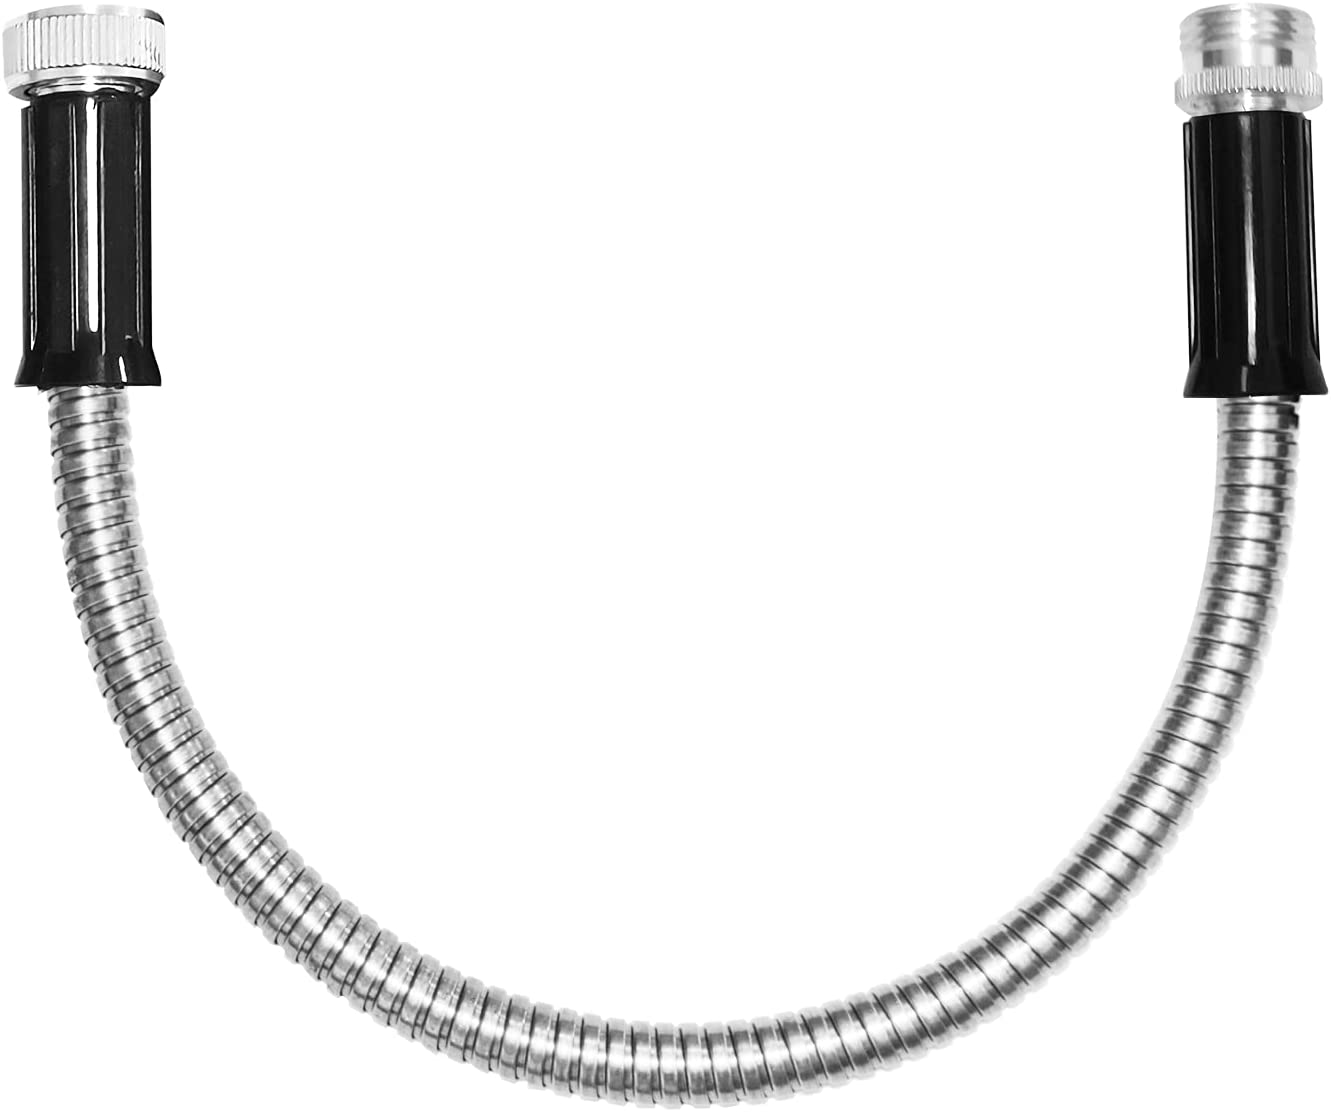 TUNHUI 1 FT Heavy Duty Flexible Metal Garden Hose Stainless Steel Water Hose Durable Lightweight Kink Free and Easy to Store Outdoor Hose